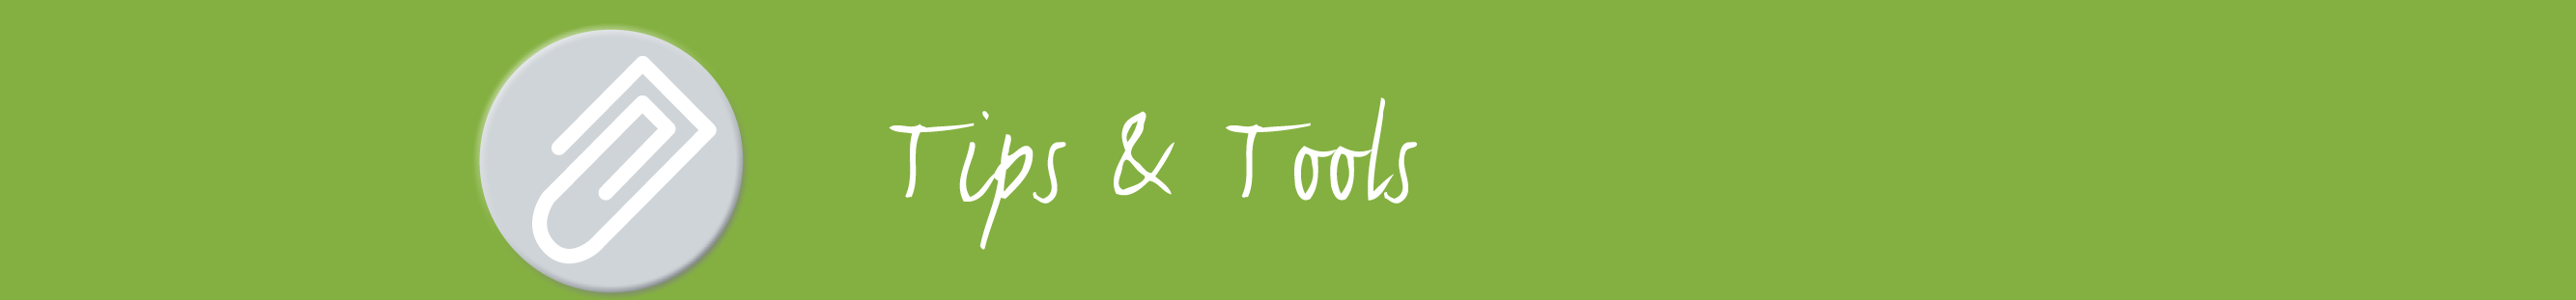 tips and tools banner image